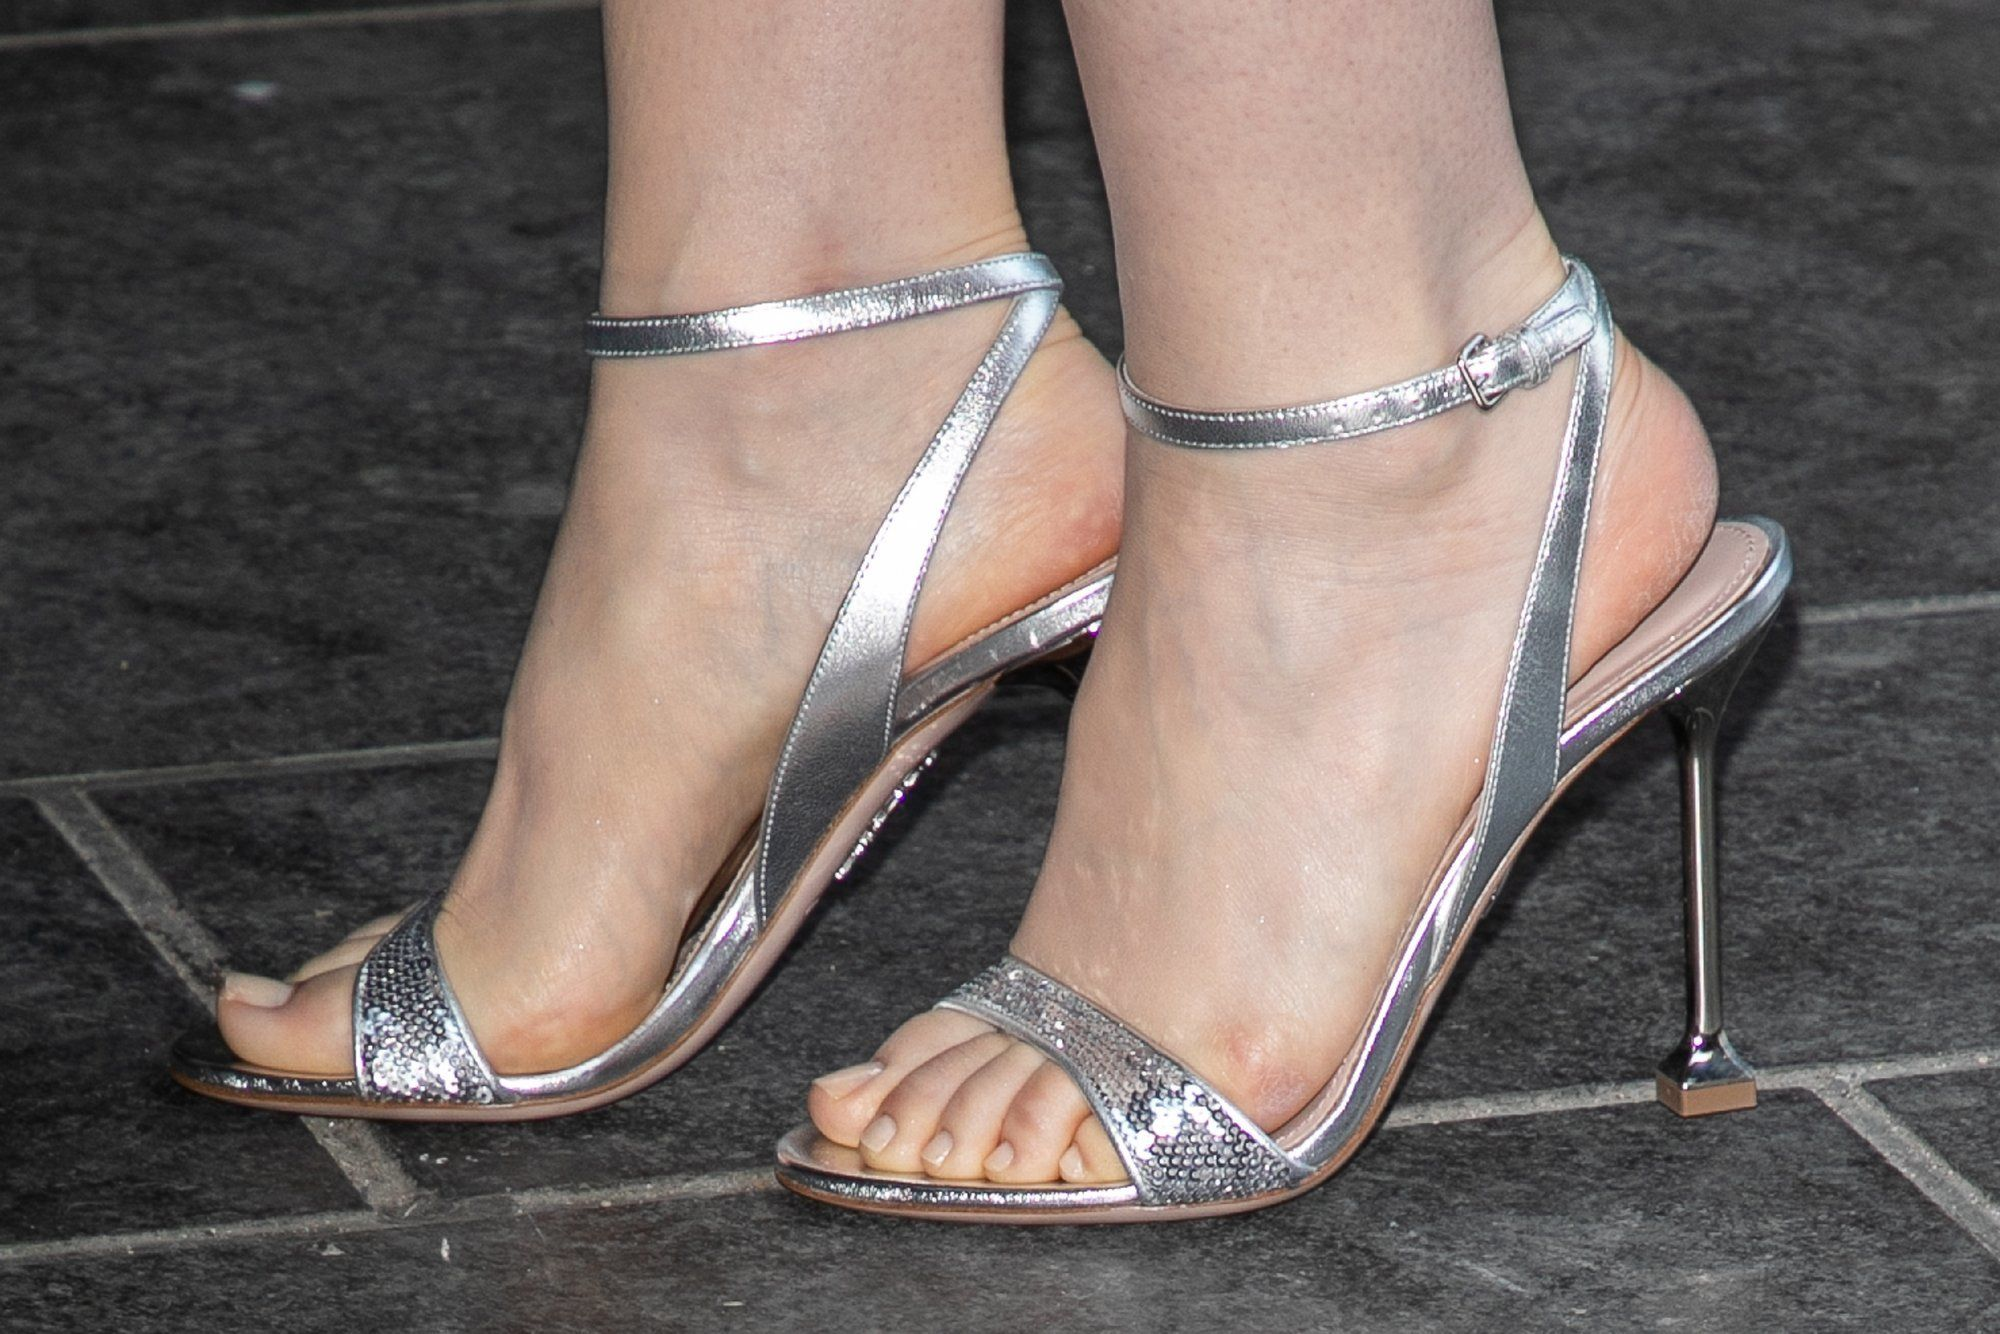 Lilly Collins Feet photo 16